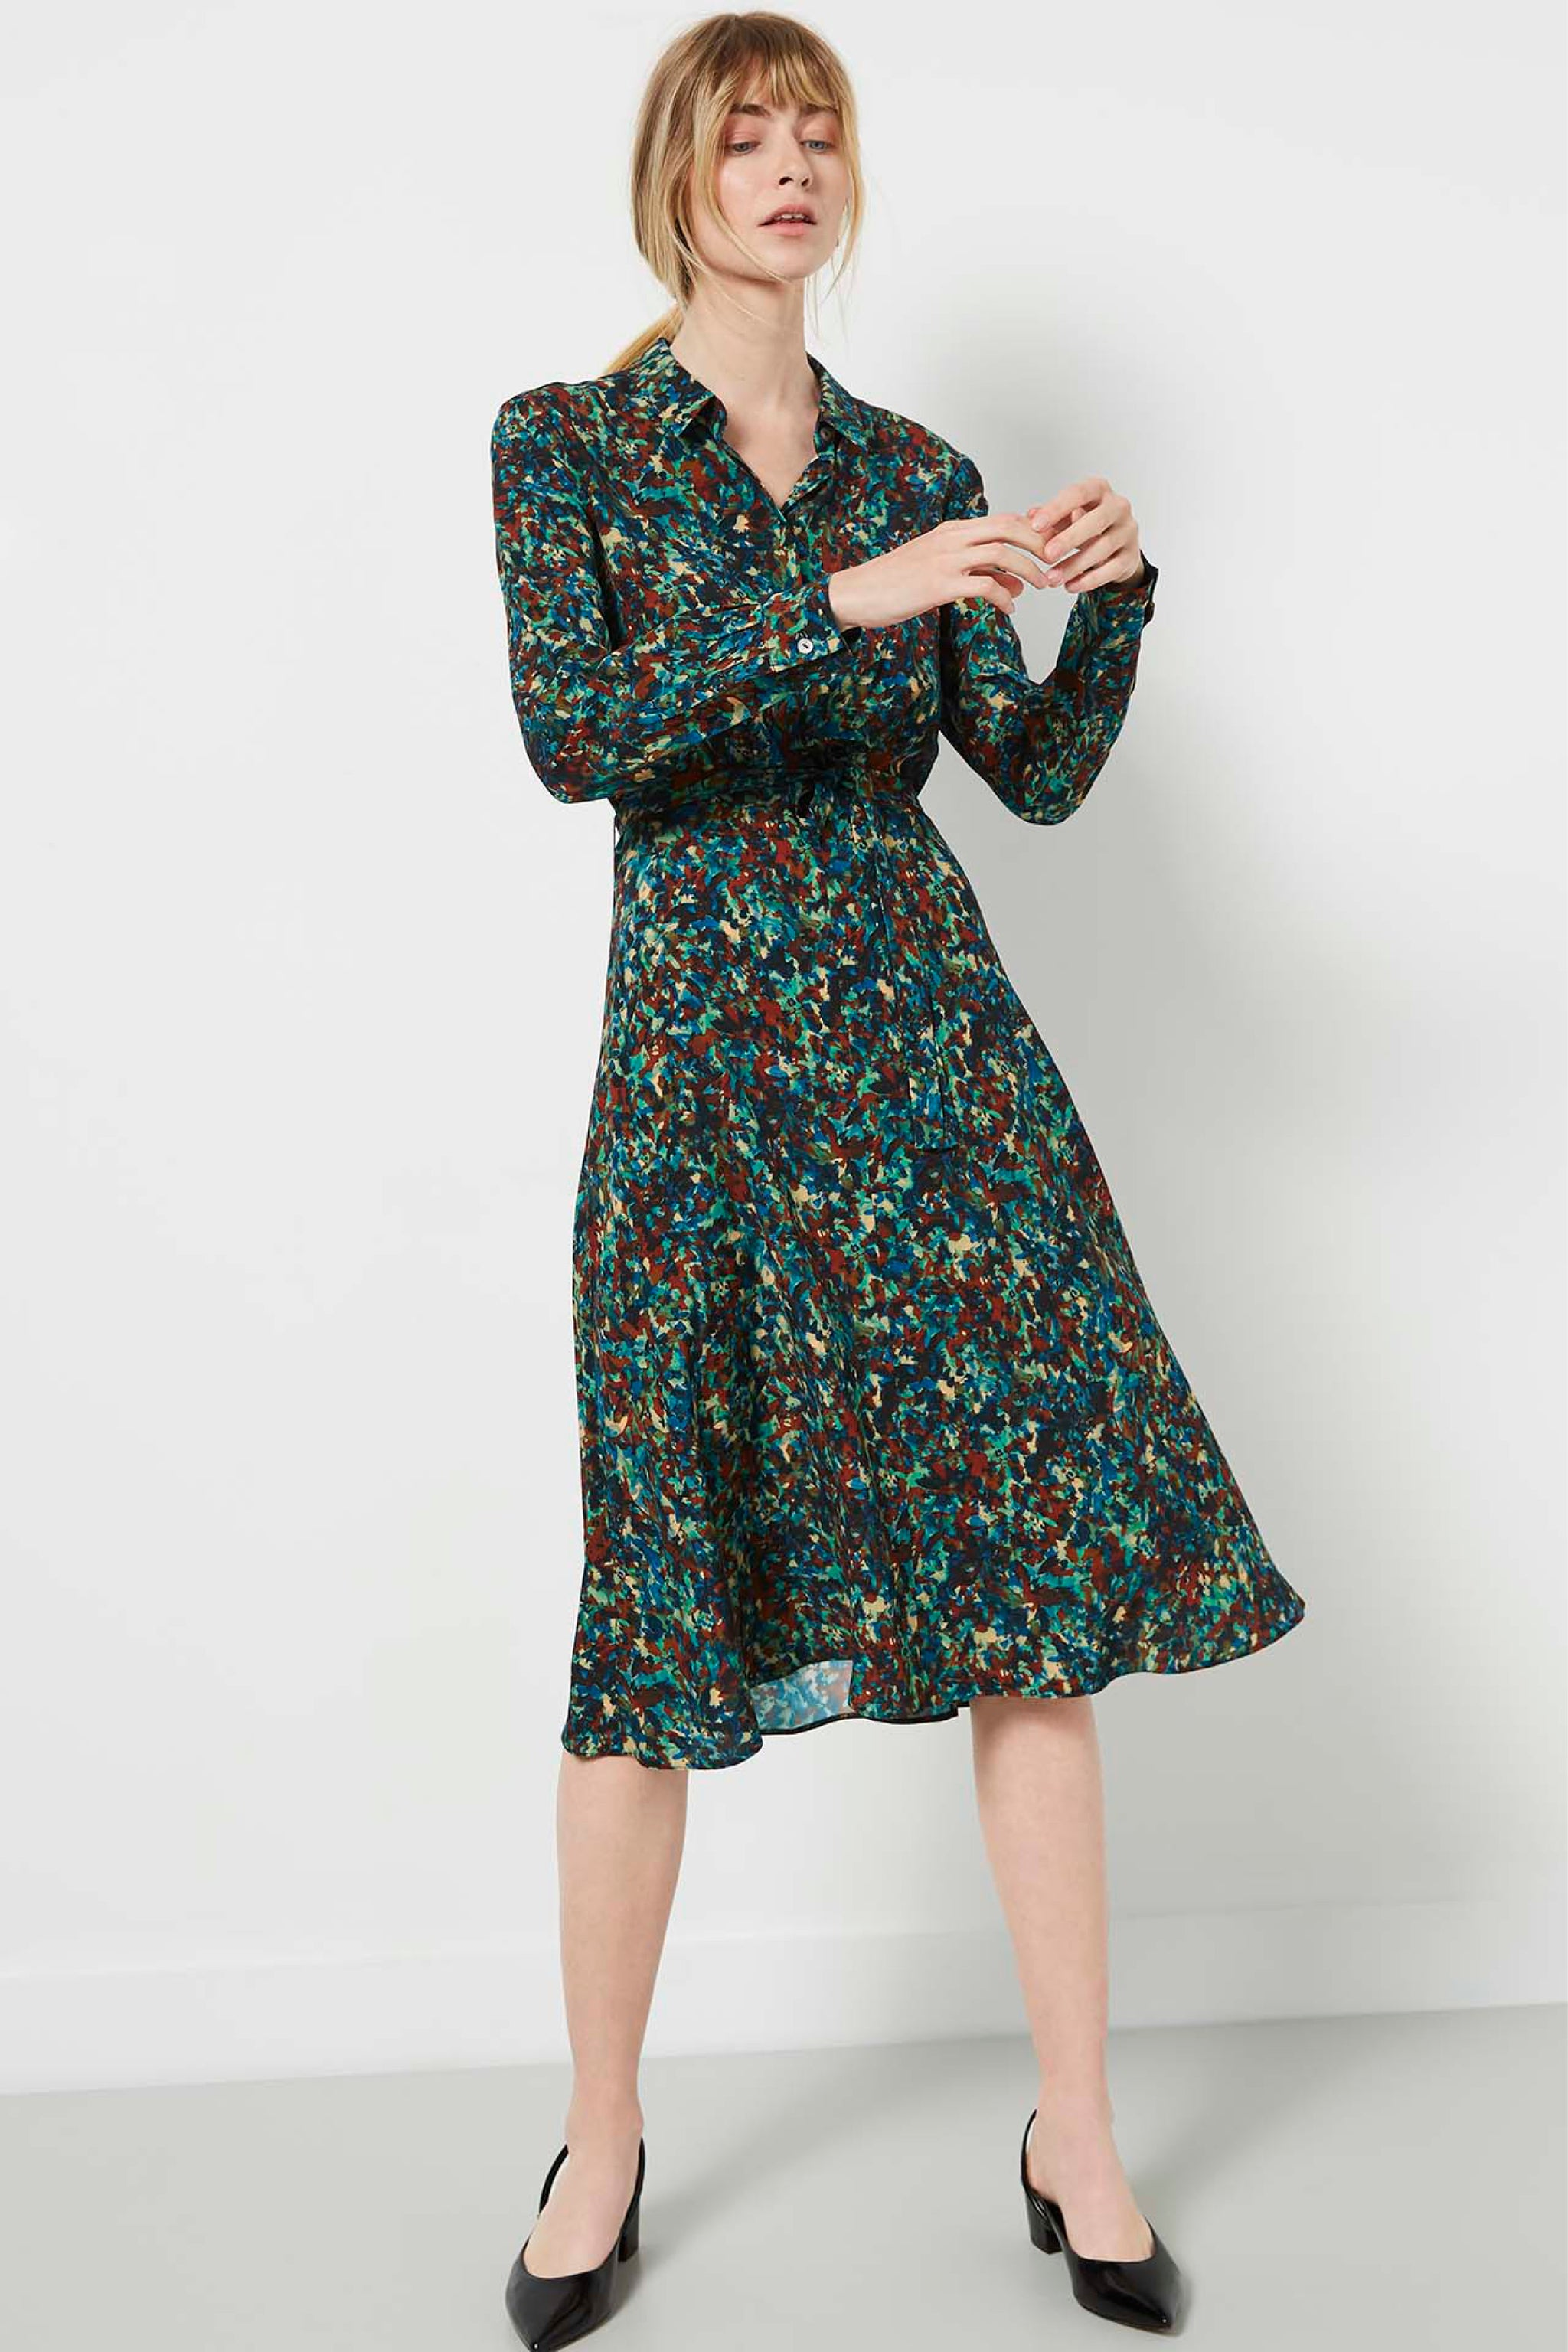 Exeter Monet Print Shirt Dress